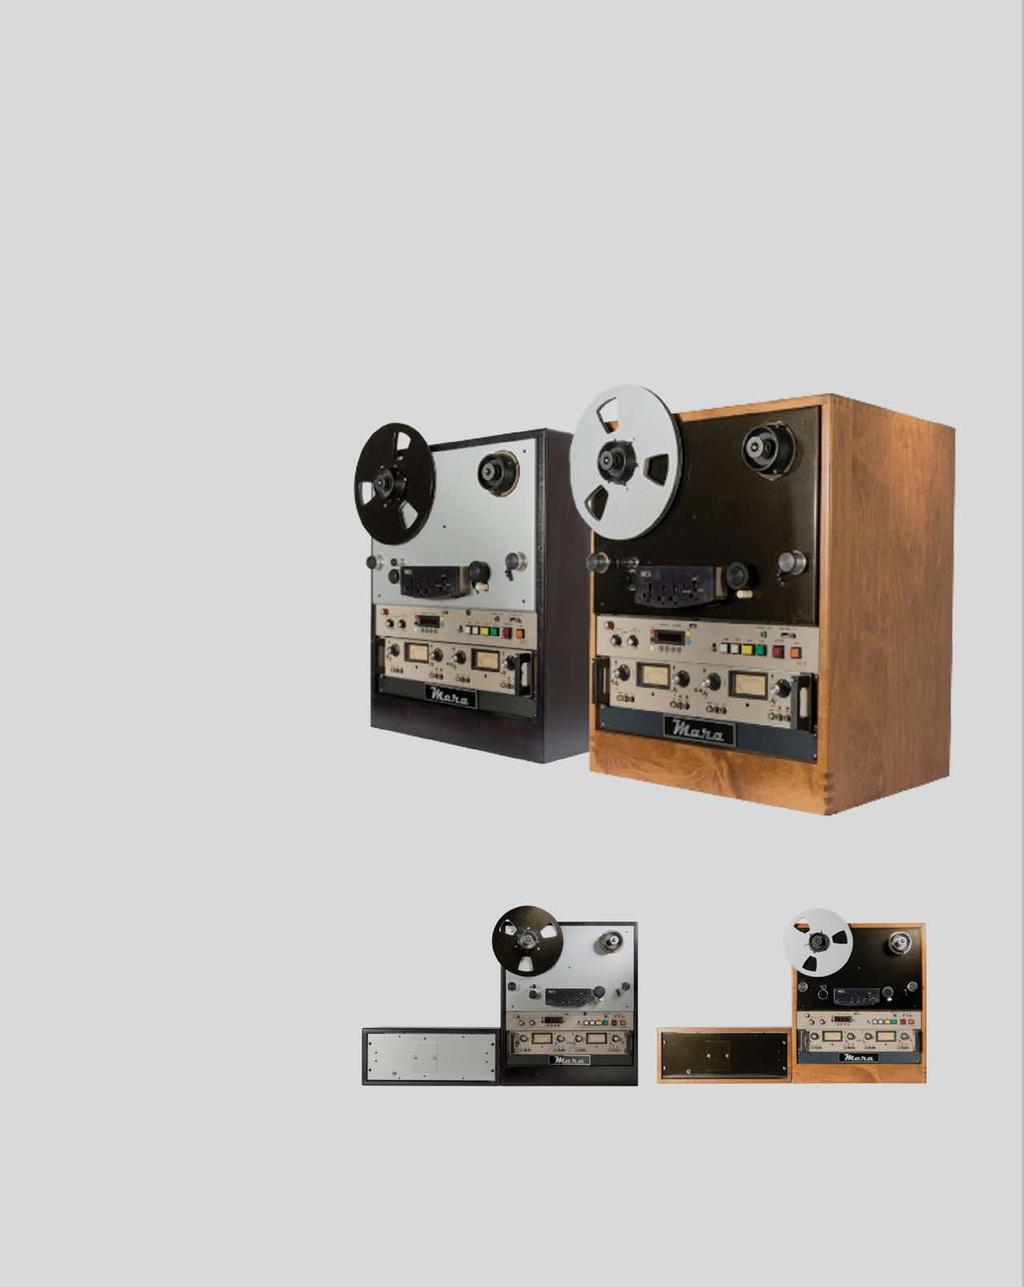 REEL-TO-REEL TAPE MACHINES / EQUIPMENT F I N A L L Y, S T U D I O P E R F O R M A N C E R I G H T I N Y O U R L I S T E N I N G R O O M MCI tape machines are simplistic in design, but most